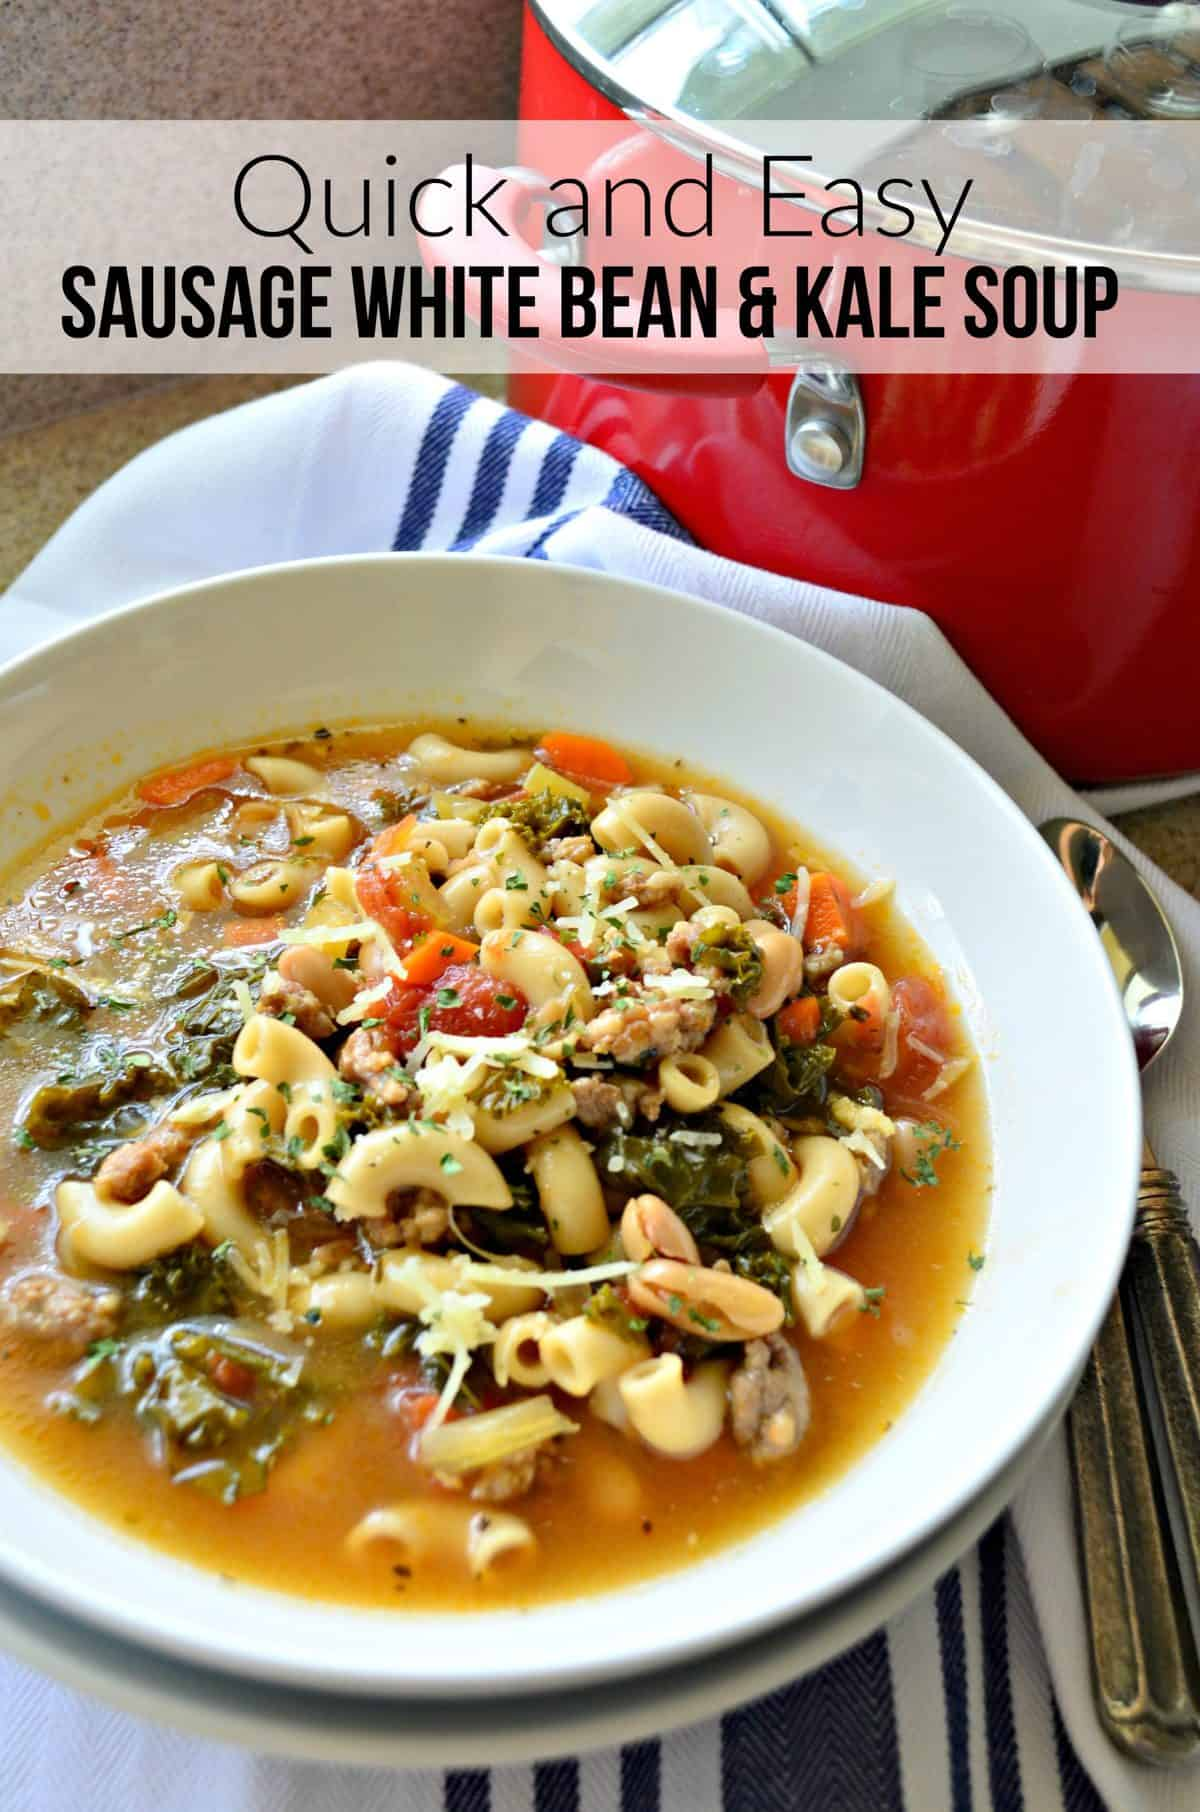 white bowl of soup with macaroni noodles, beans, greens, carrots, and tomatoes with title text.